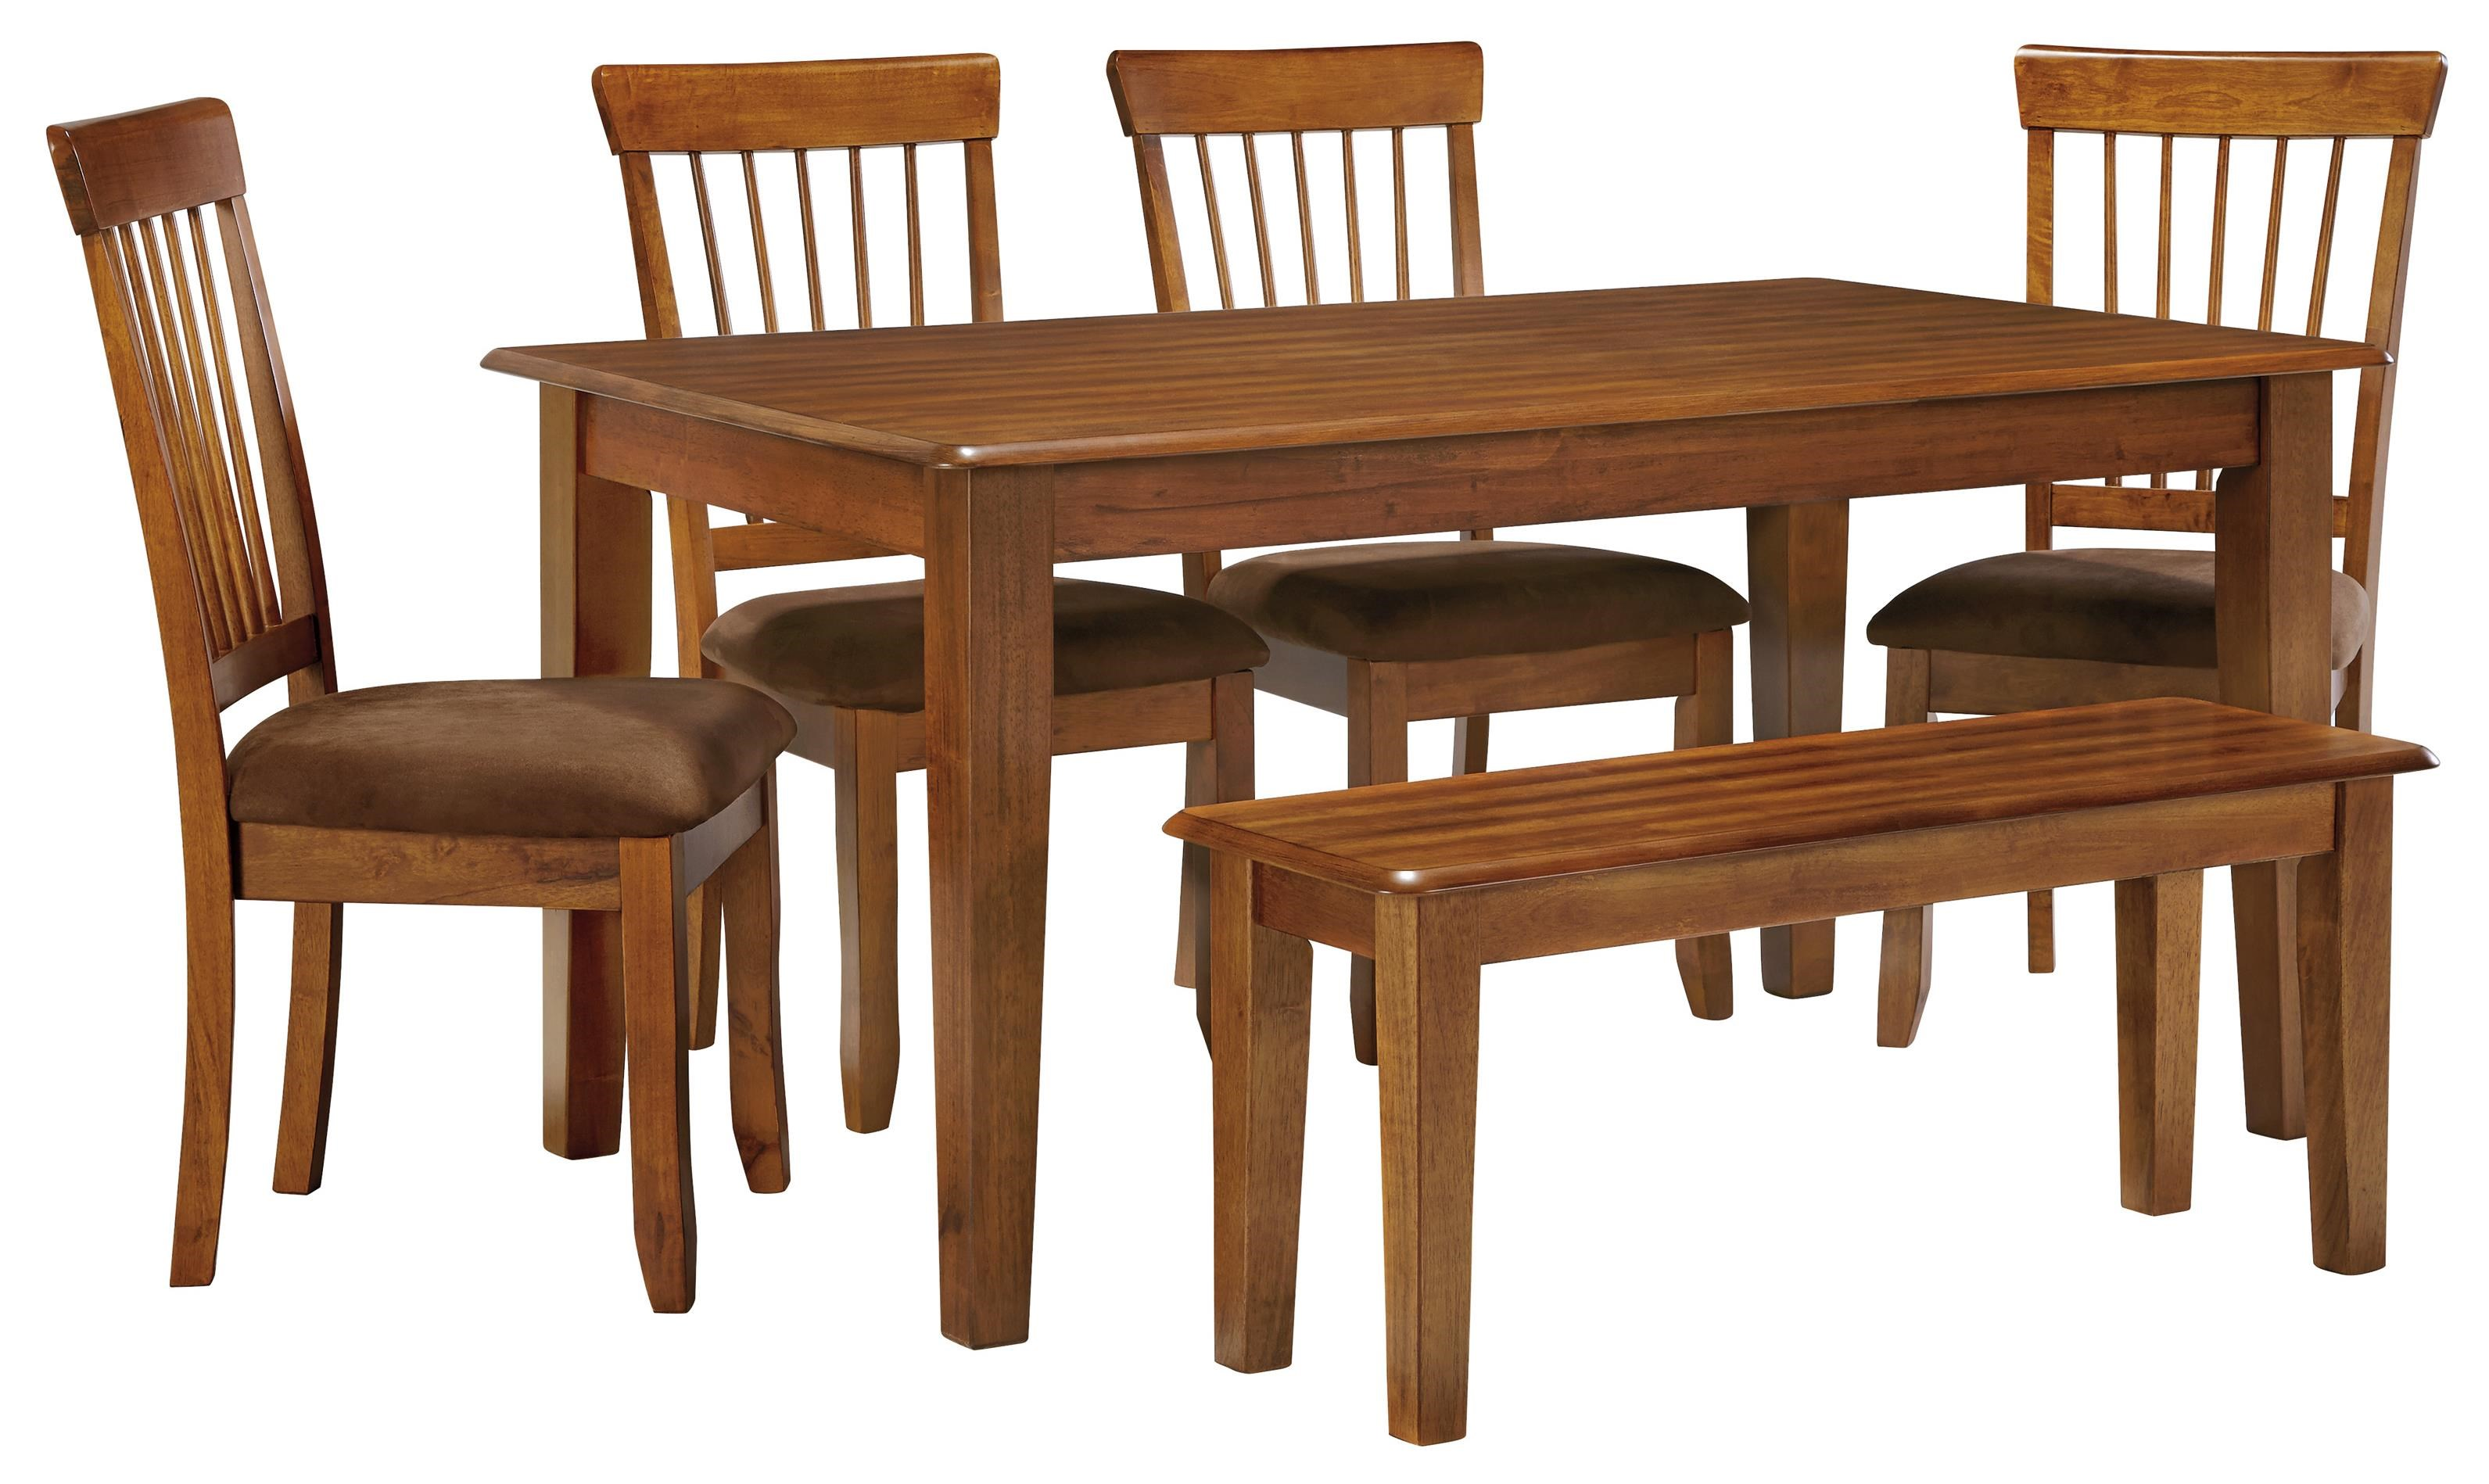 Ashley Furniture Barista36 X 60 Table With 4 Chairs U0026 Bench ...